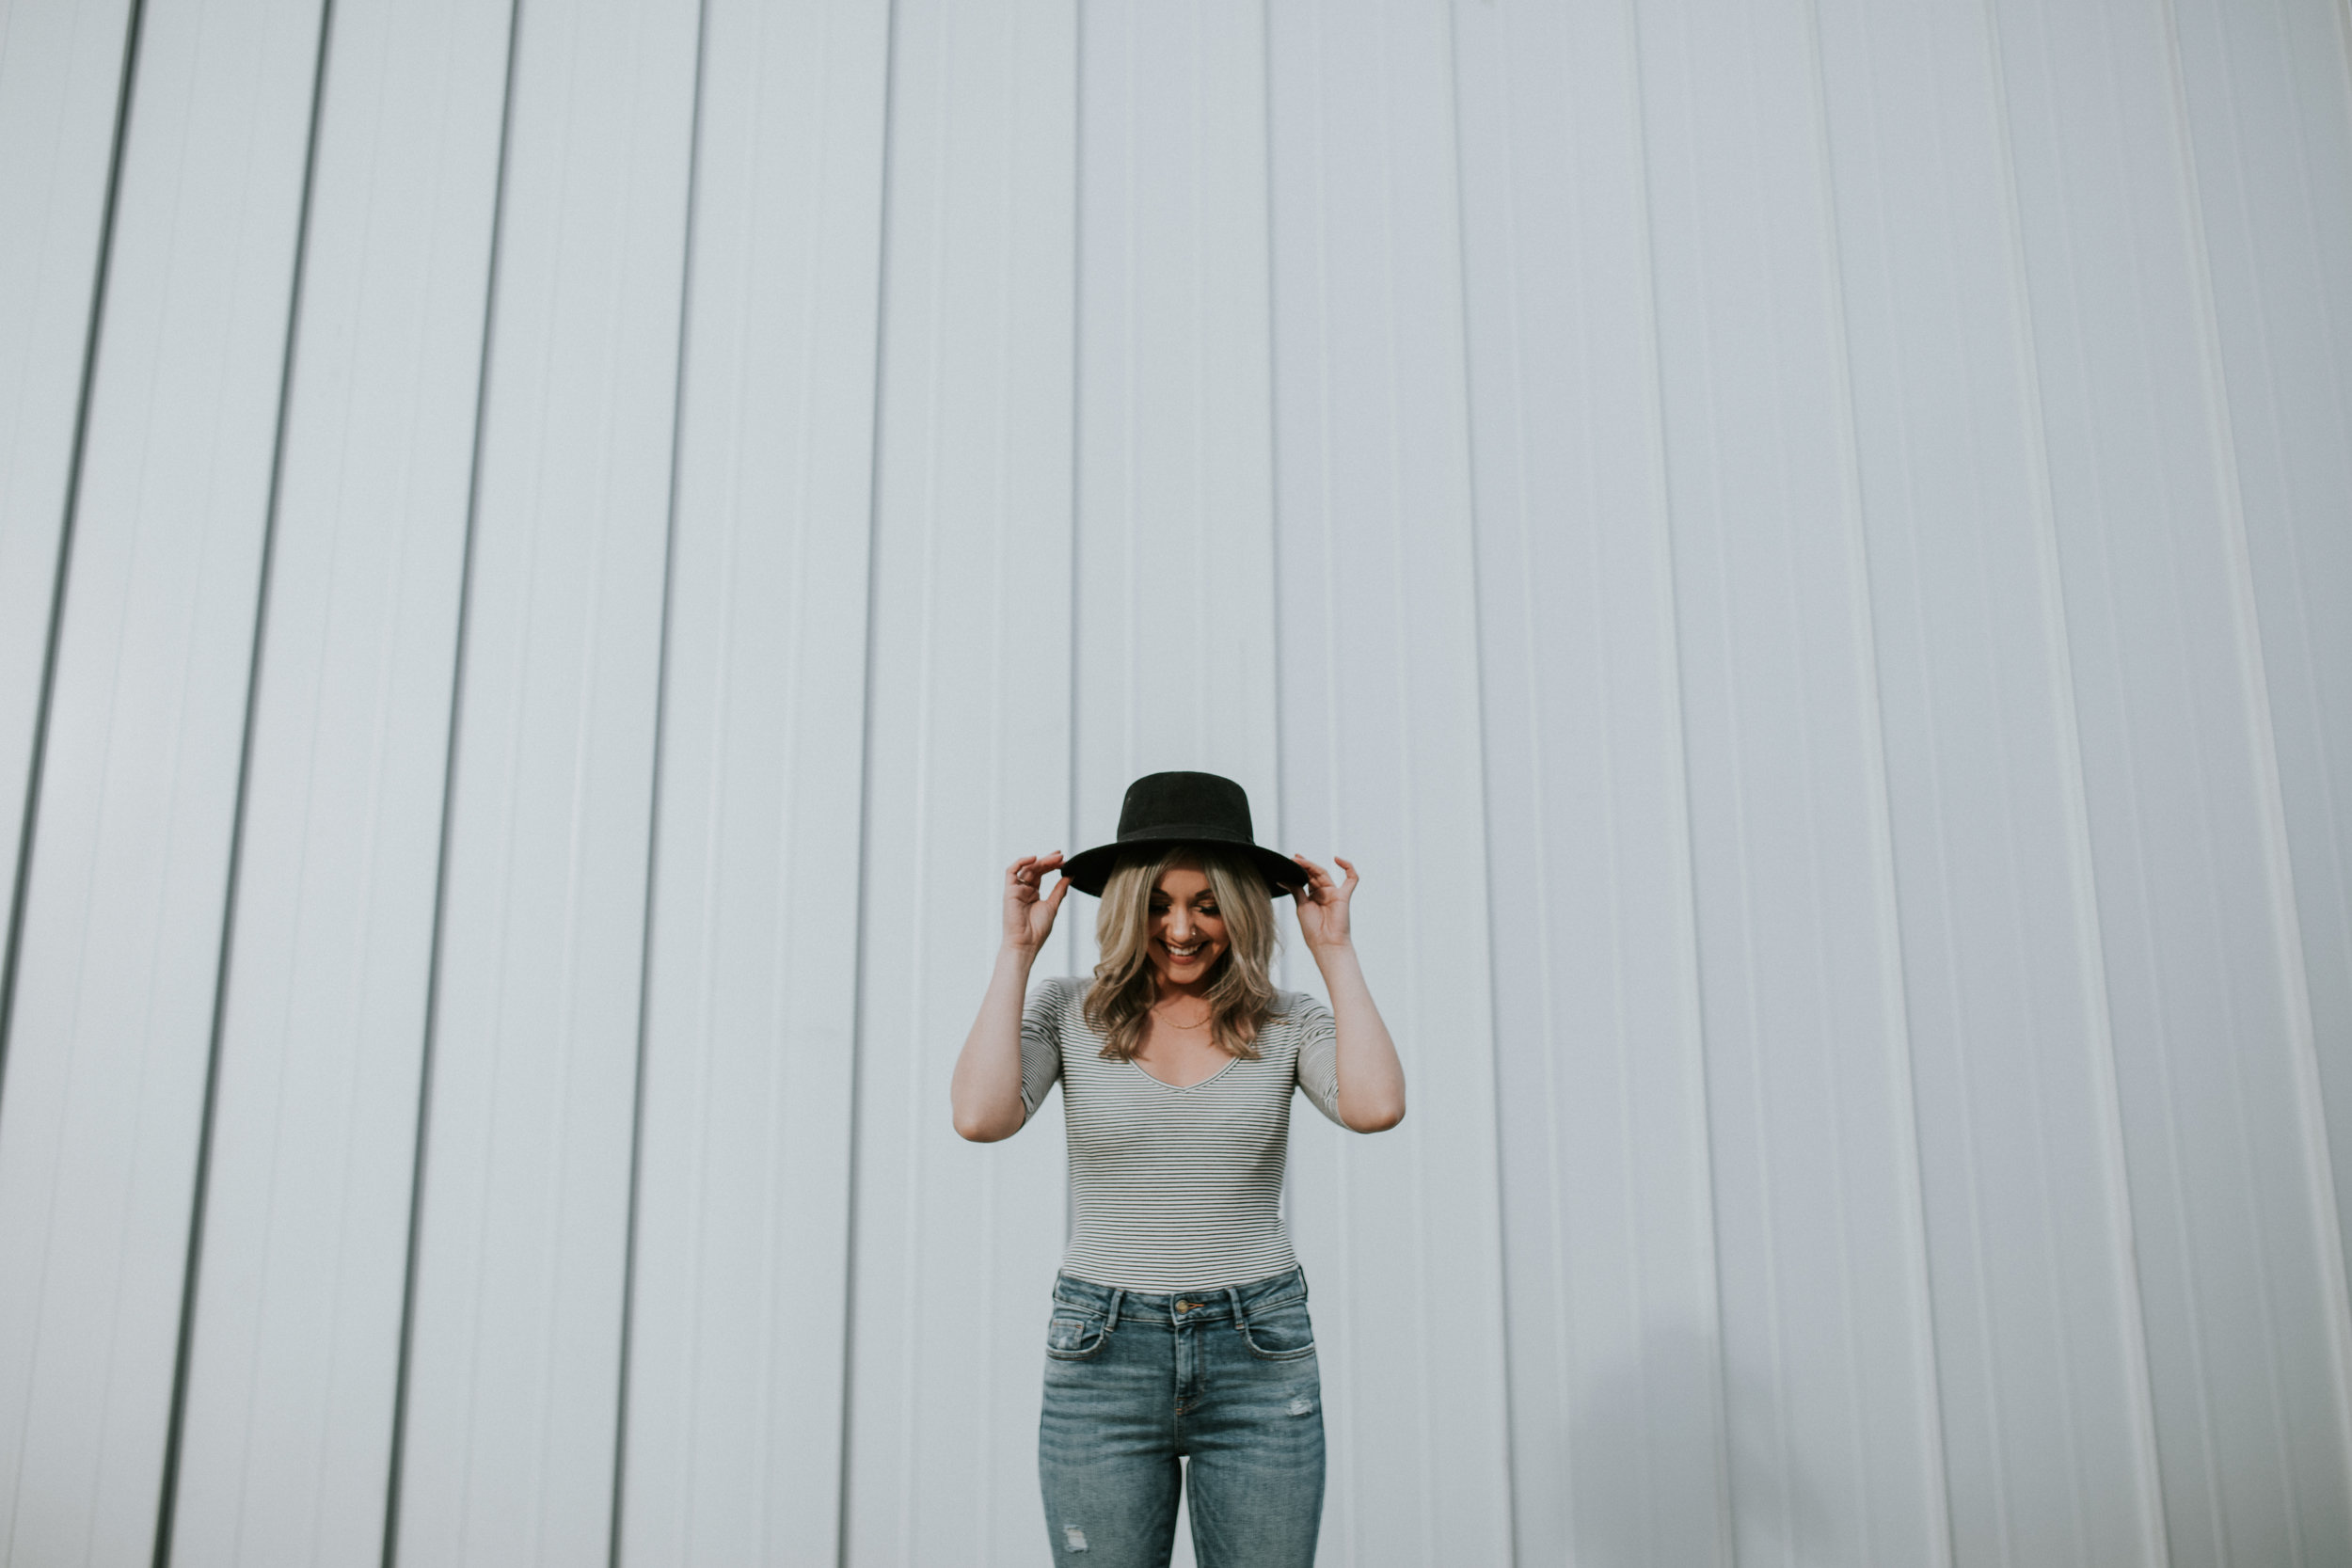 Chelle Morgan Vancouver blogger smiling in black hat, striped top and jeans